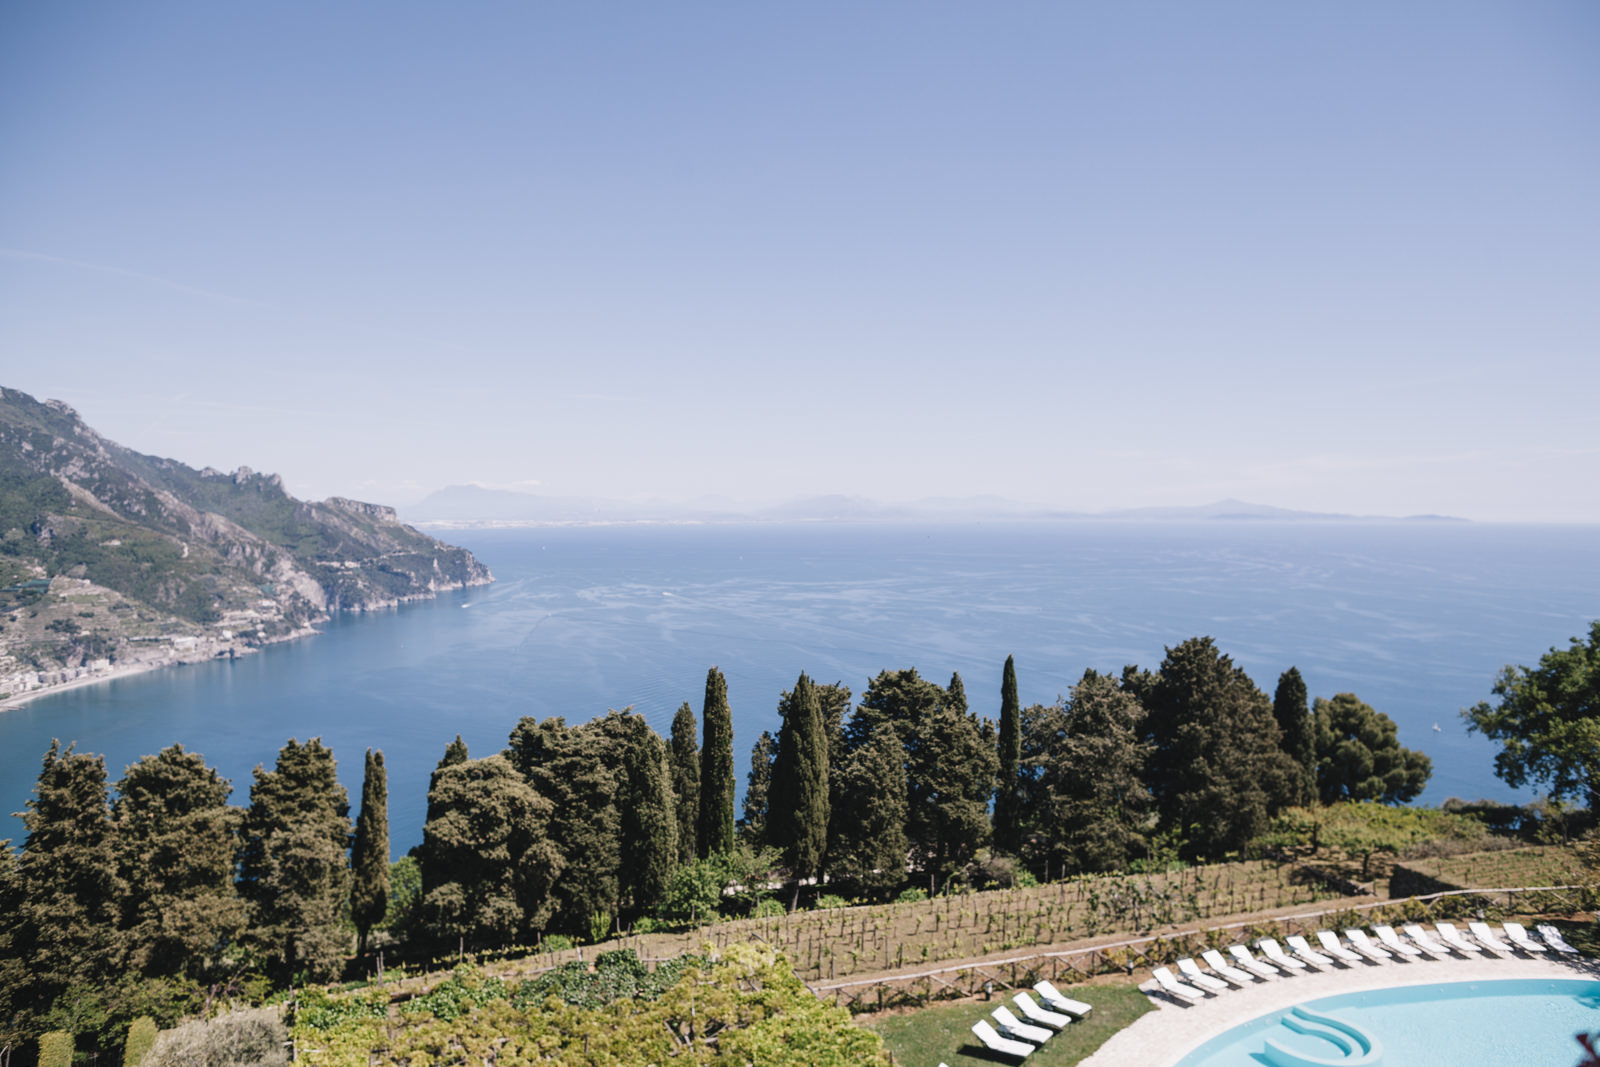 landscape from the pool in villa cimbrone